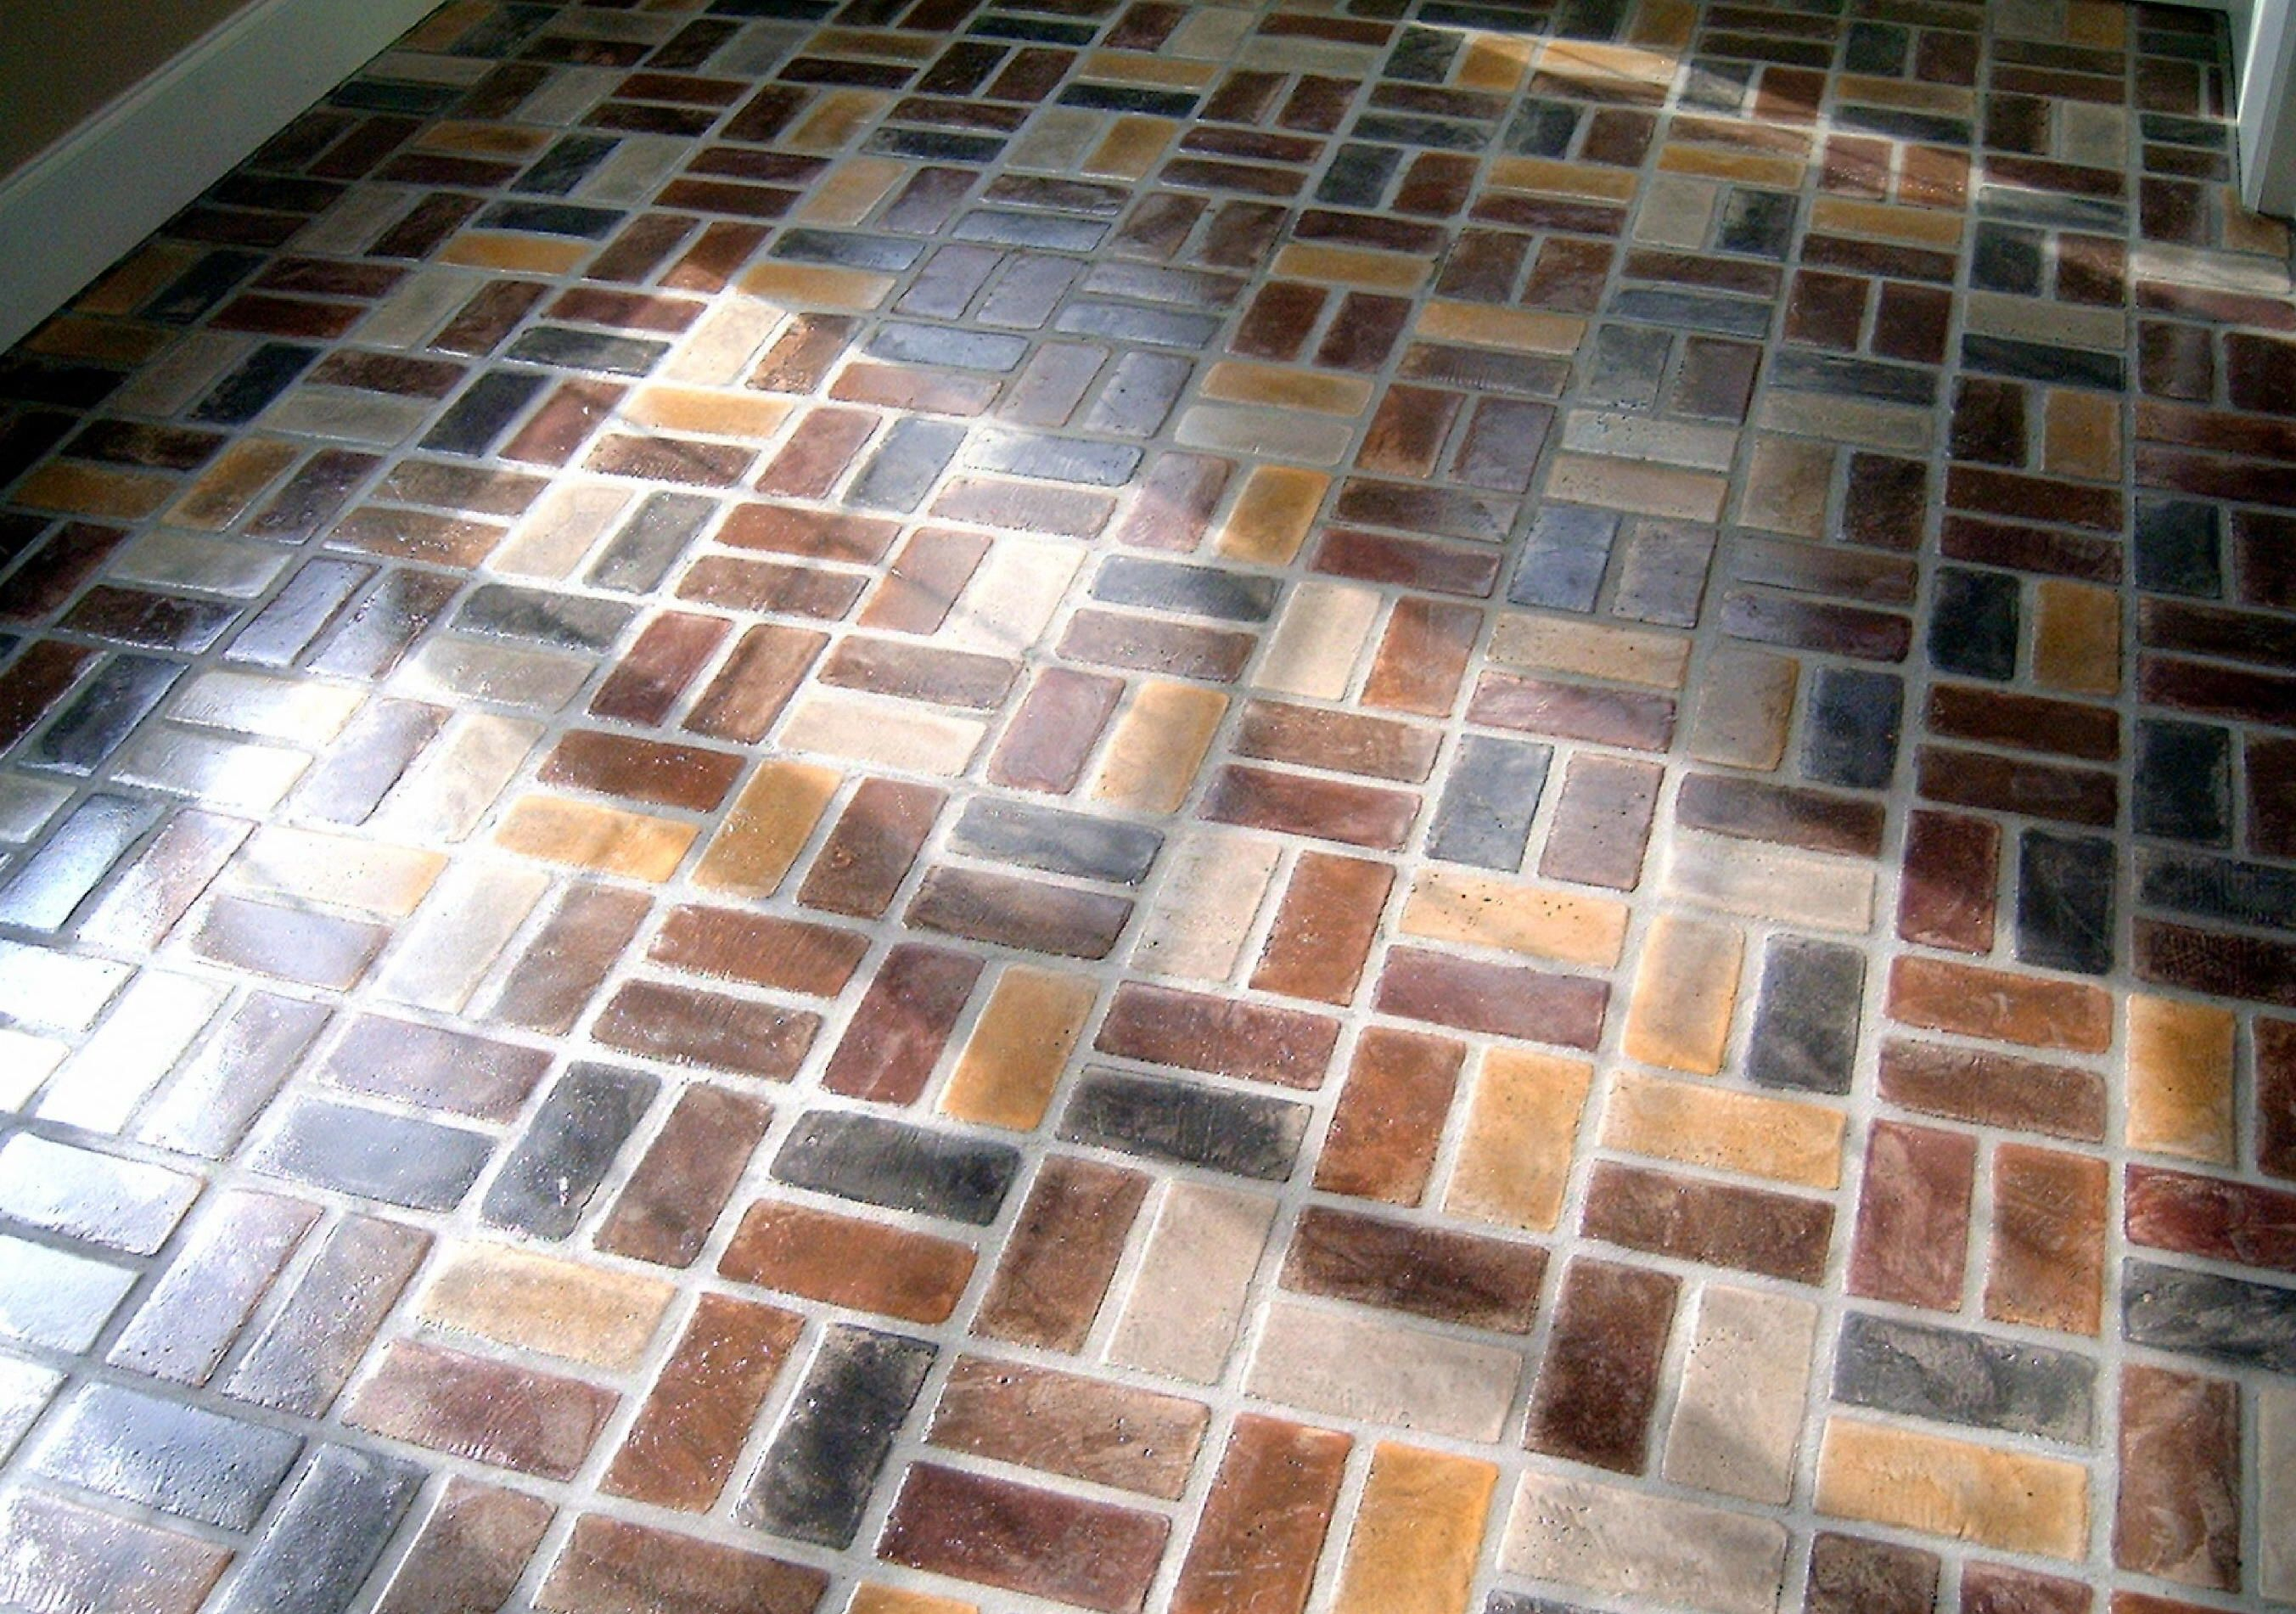 Brick Pavers For Kitchen Floor | Old Chicago Brick Flooring By PortStone